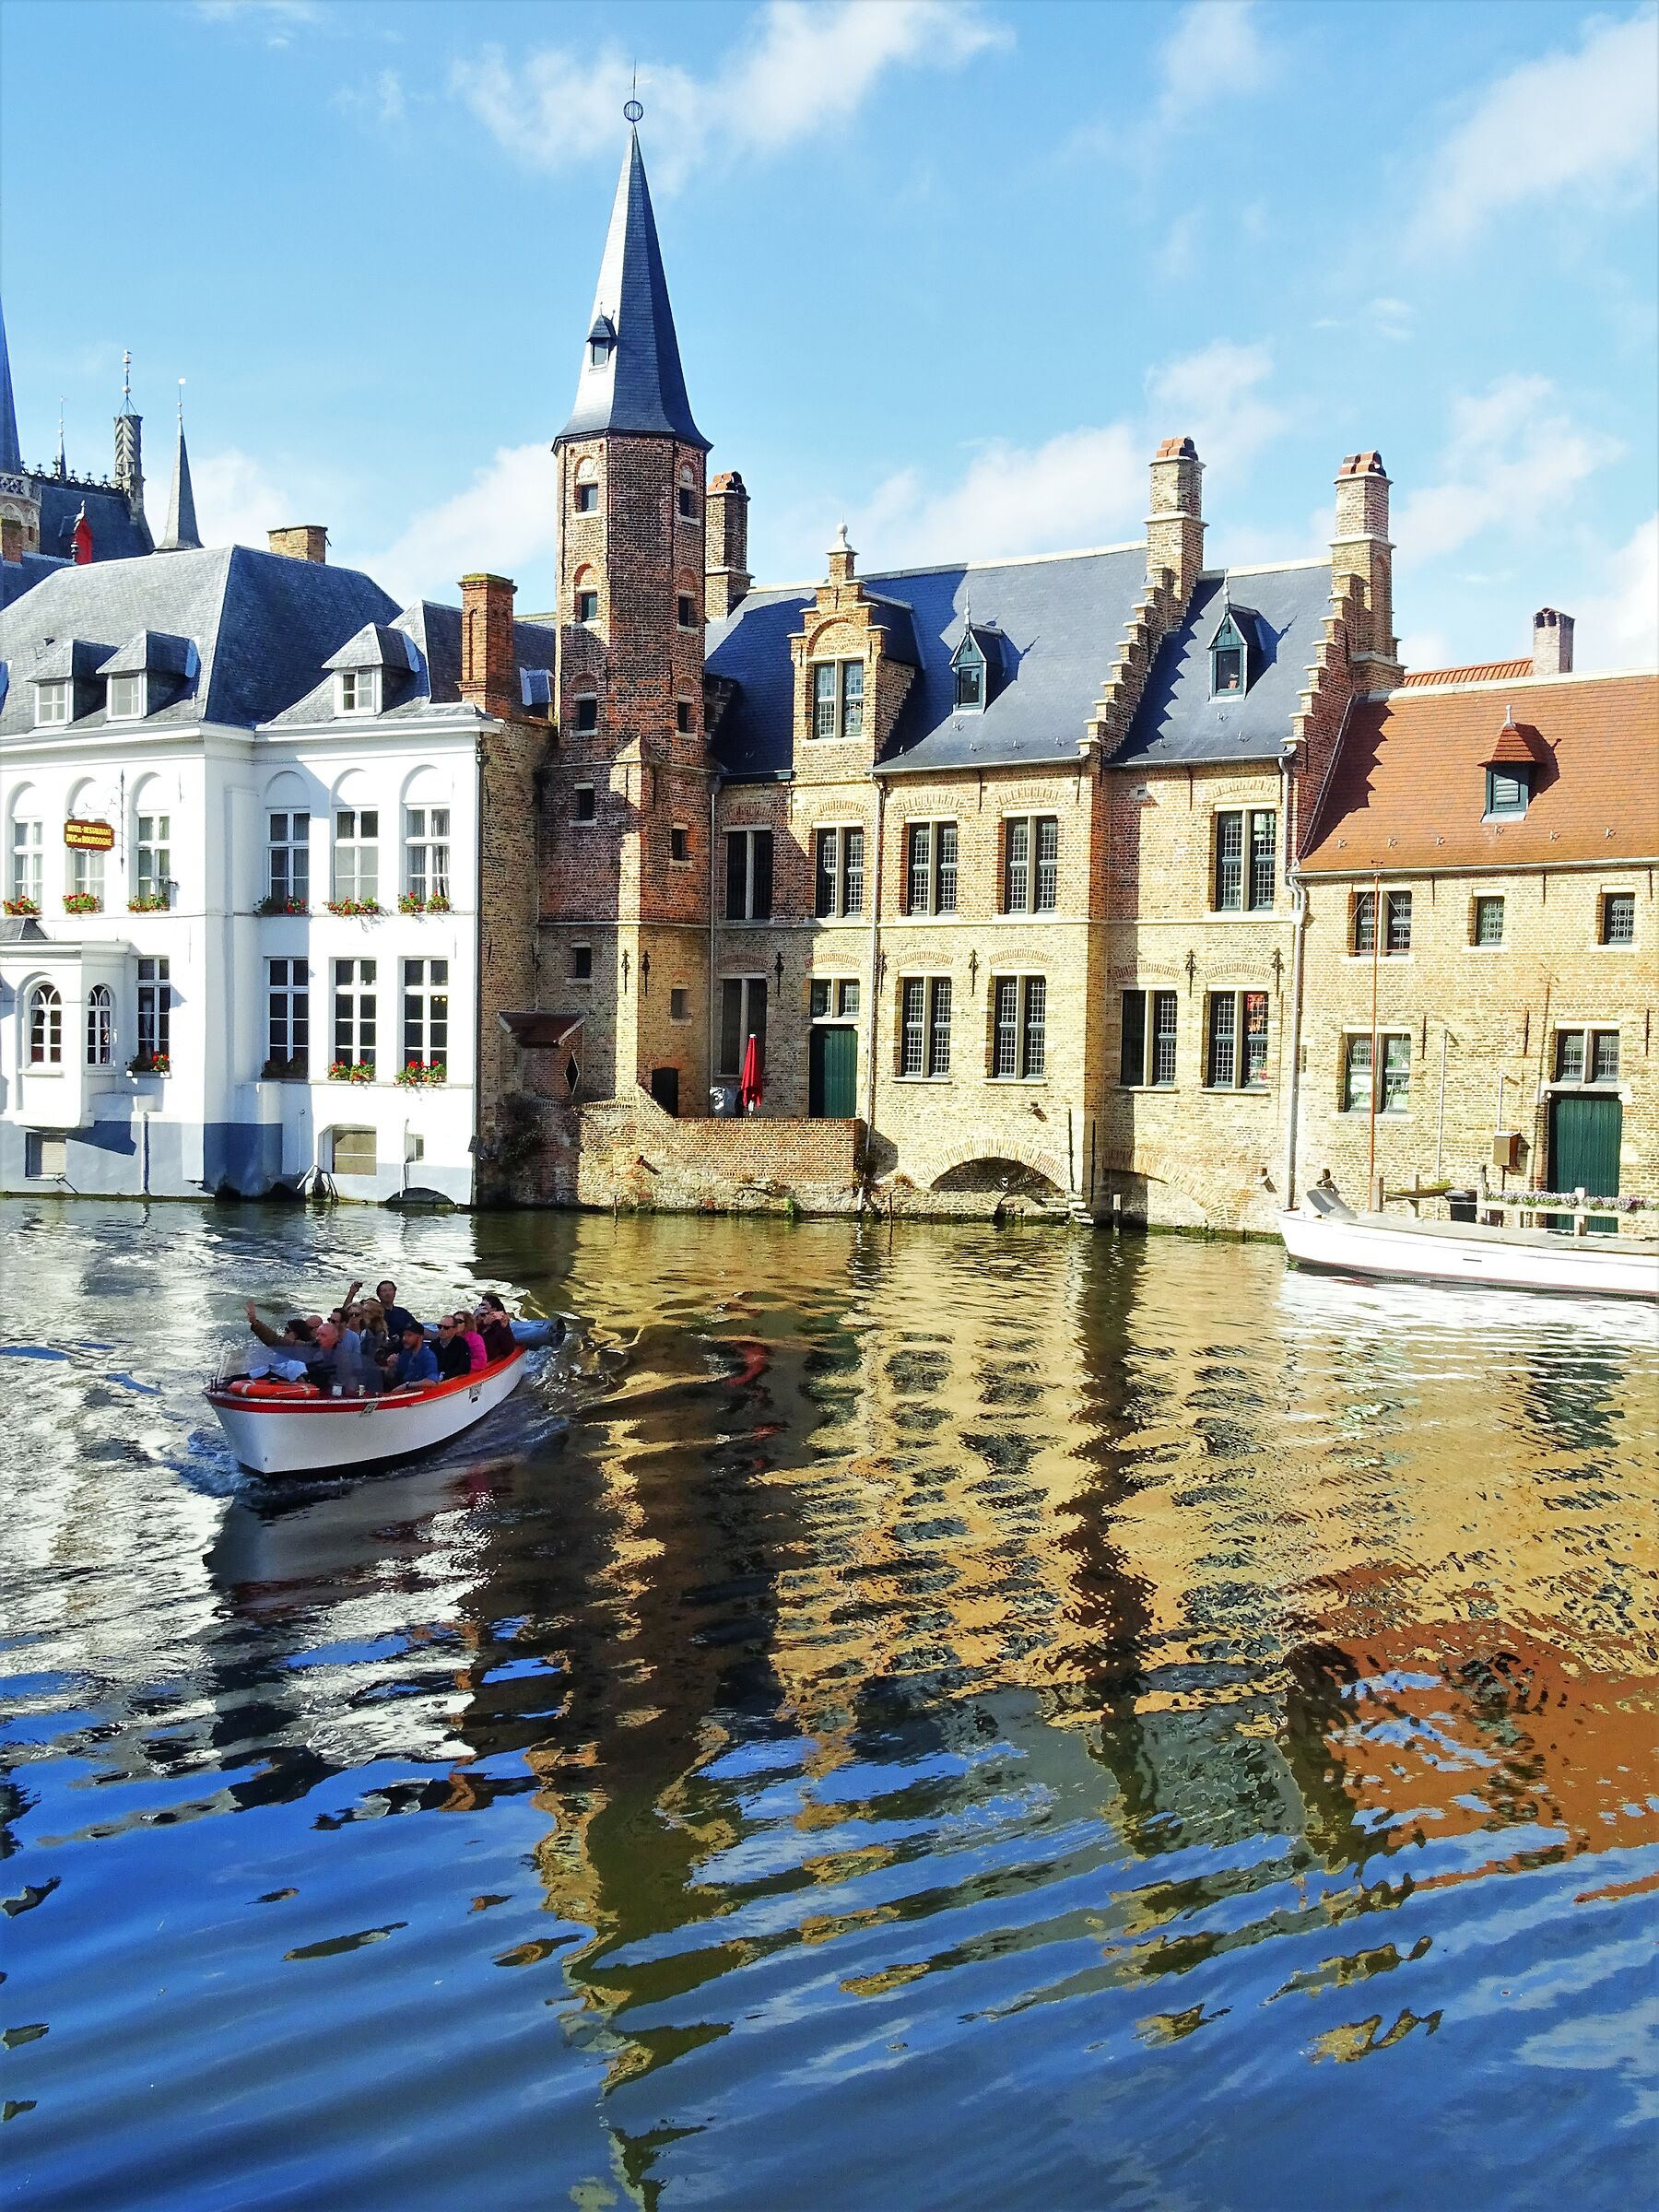 Bruges is mirrored in the waters...